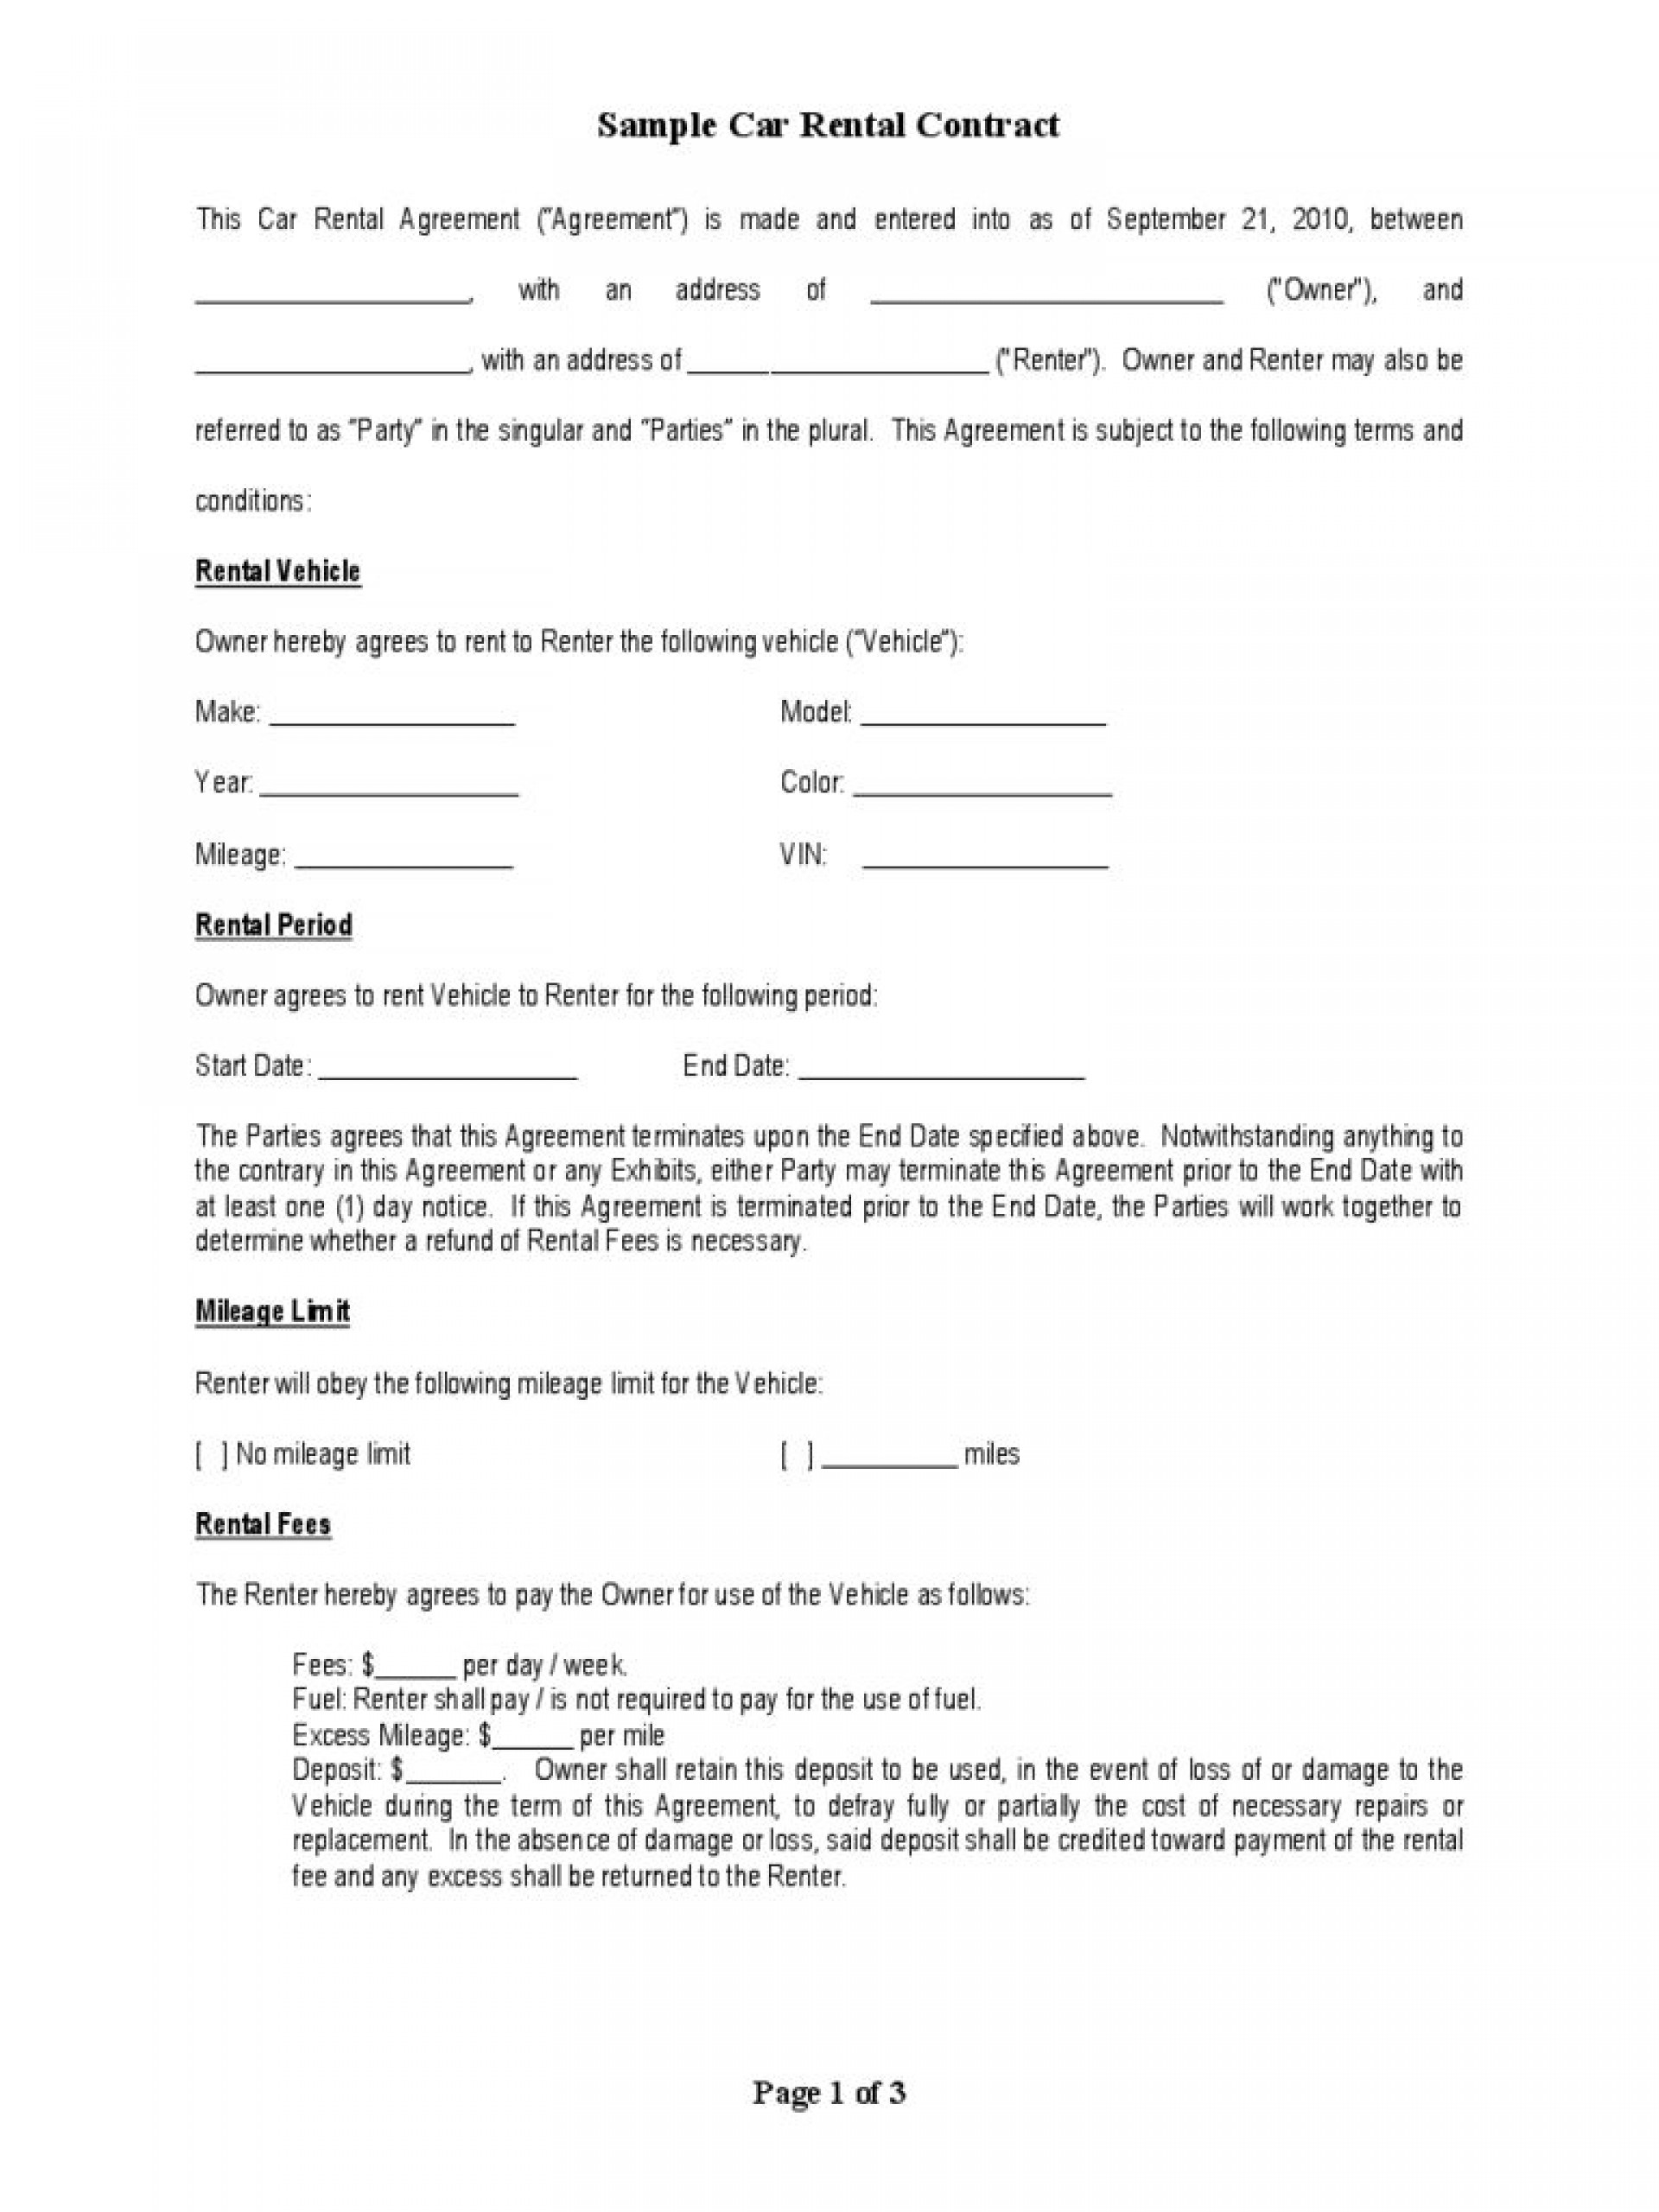 013 Fascinating Car Rental Agreement Template High Definition  Vehicle Rent To Own South Africa Singapore1920